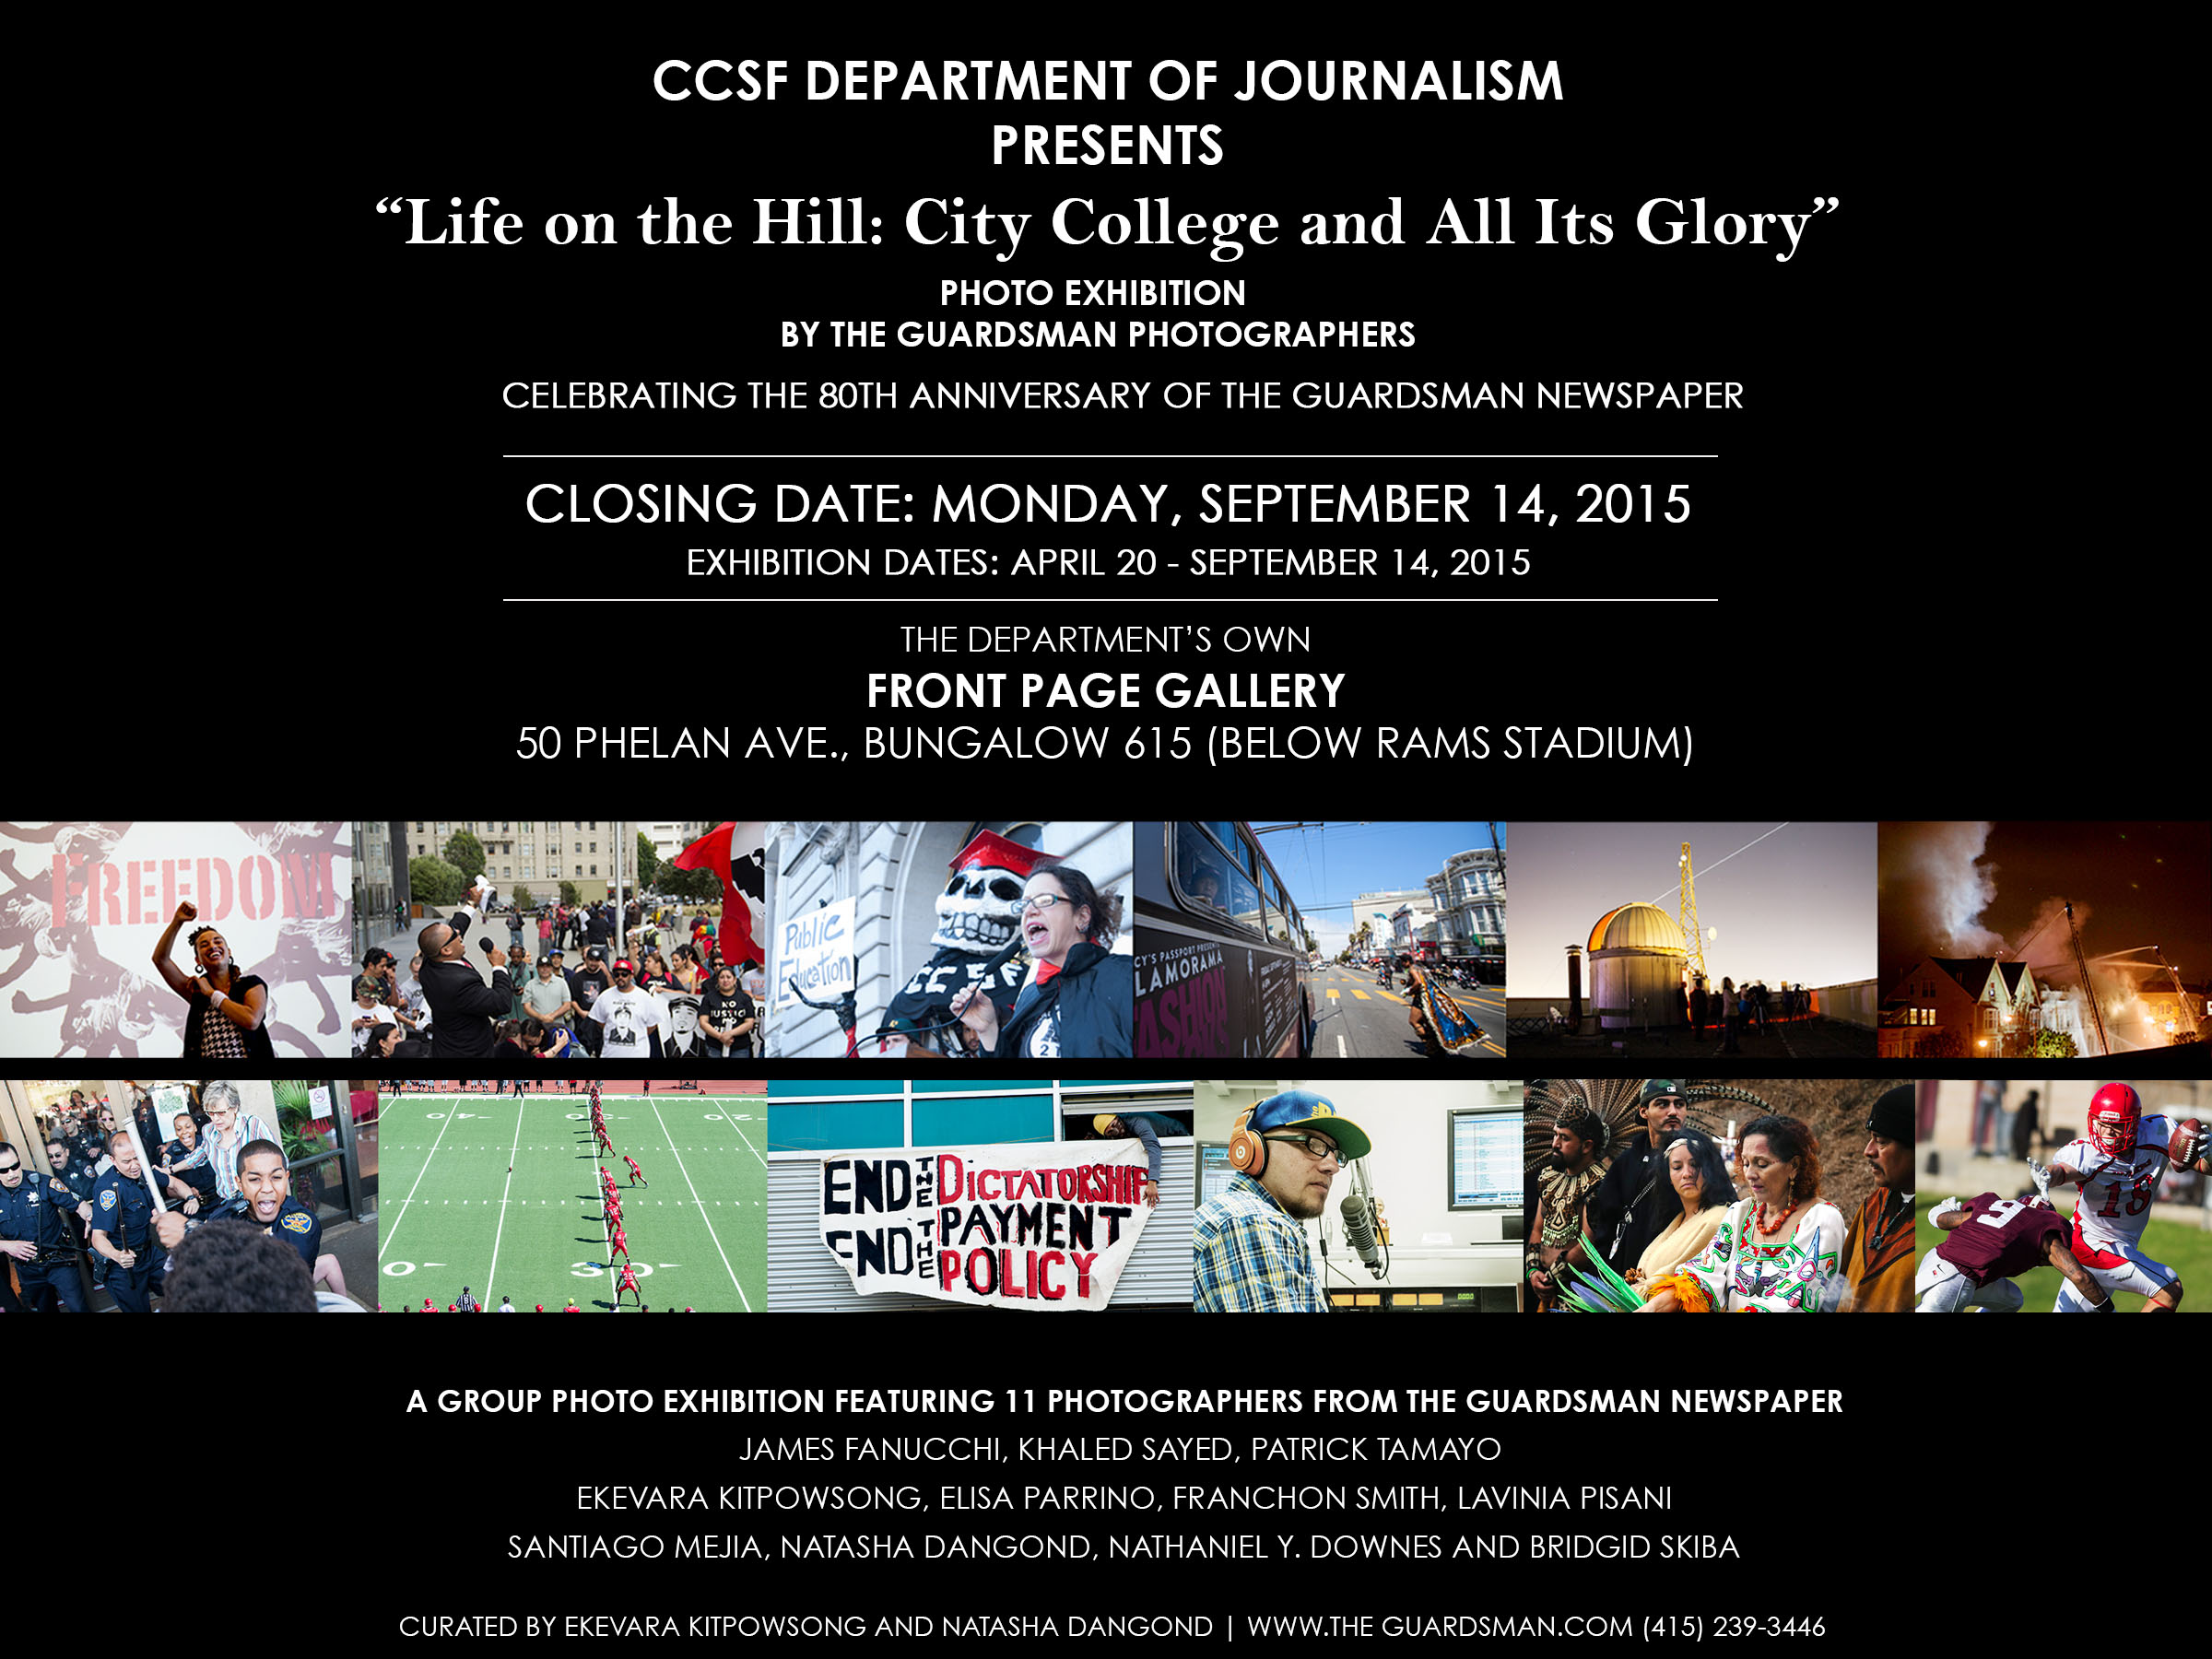 """""""Life on the Hill: City College and All Its Glory"""" Photo exhibition by The Guardsman photographers. Celebrating the 80th anniversary of The Guardsman newspaper. Closing exhibition date: Monday, Sept. 14, 2015."""